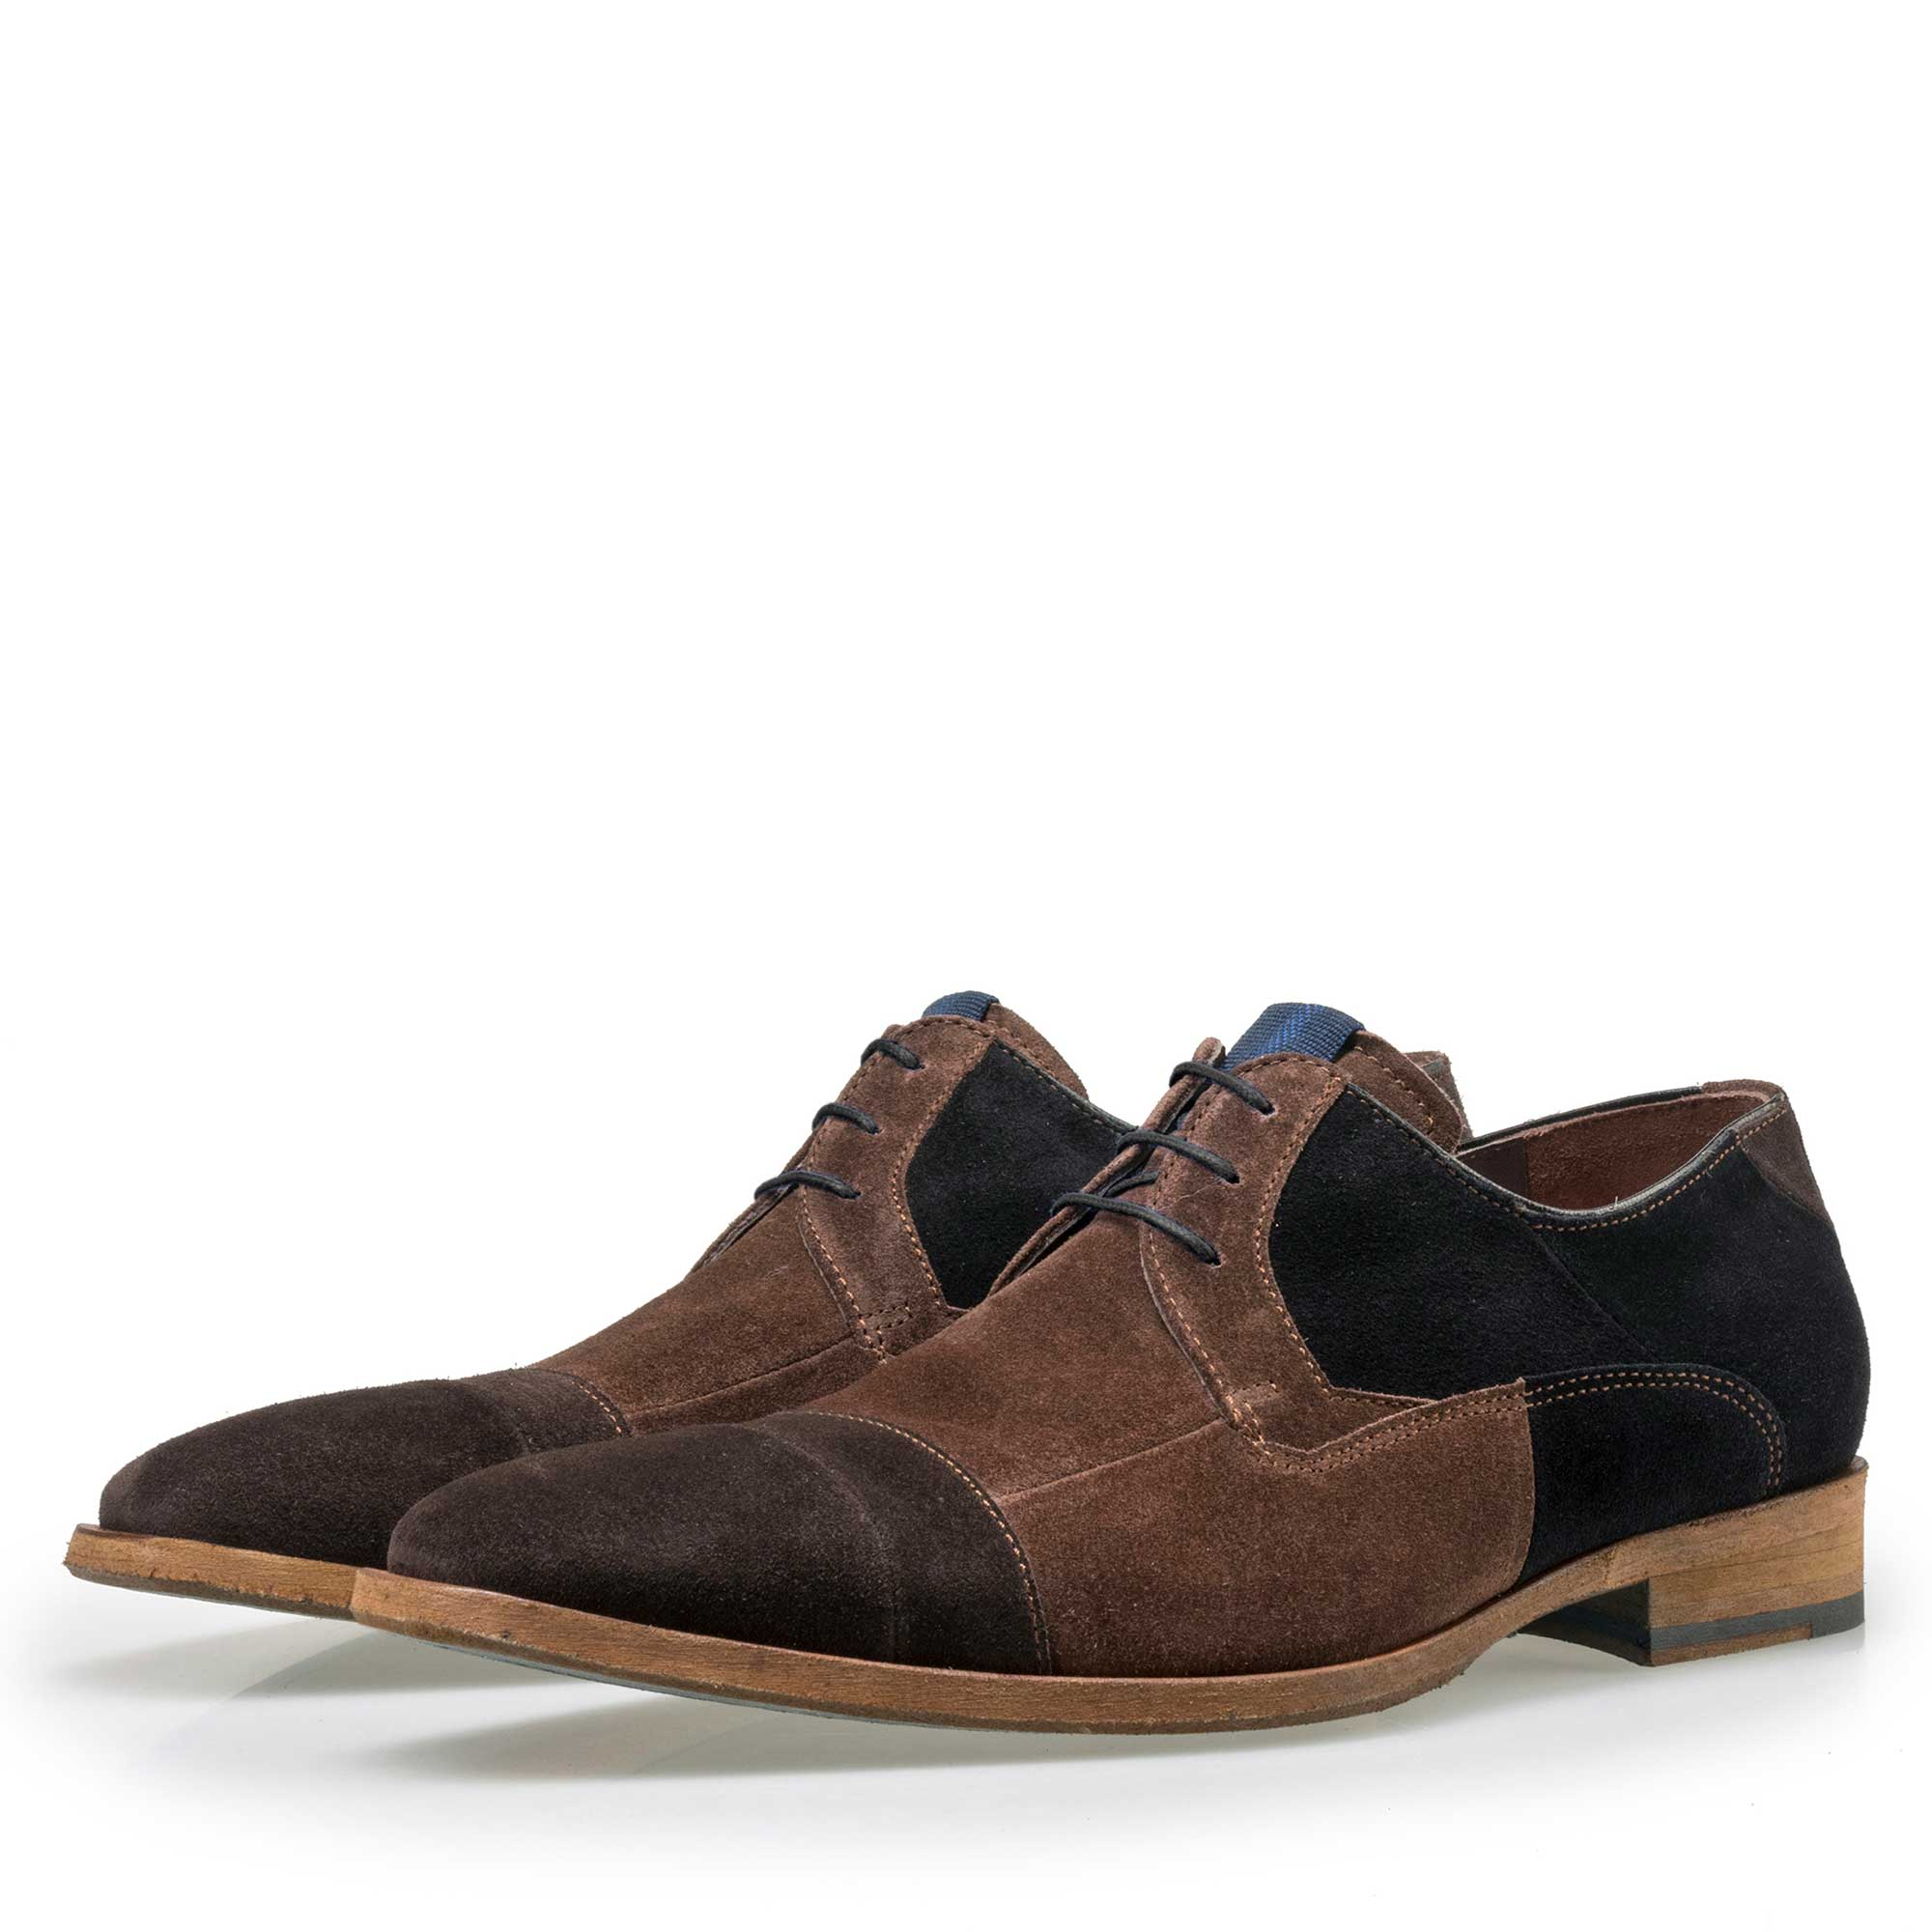 18048/00 - Floris van Bommel brown suede leather patchwork lace shoe